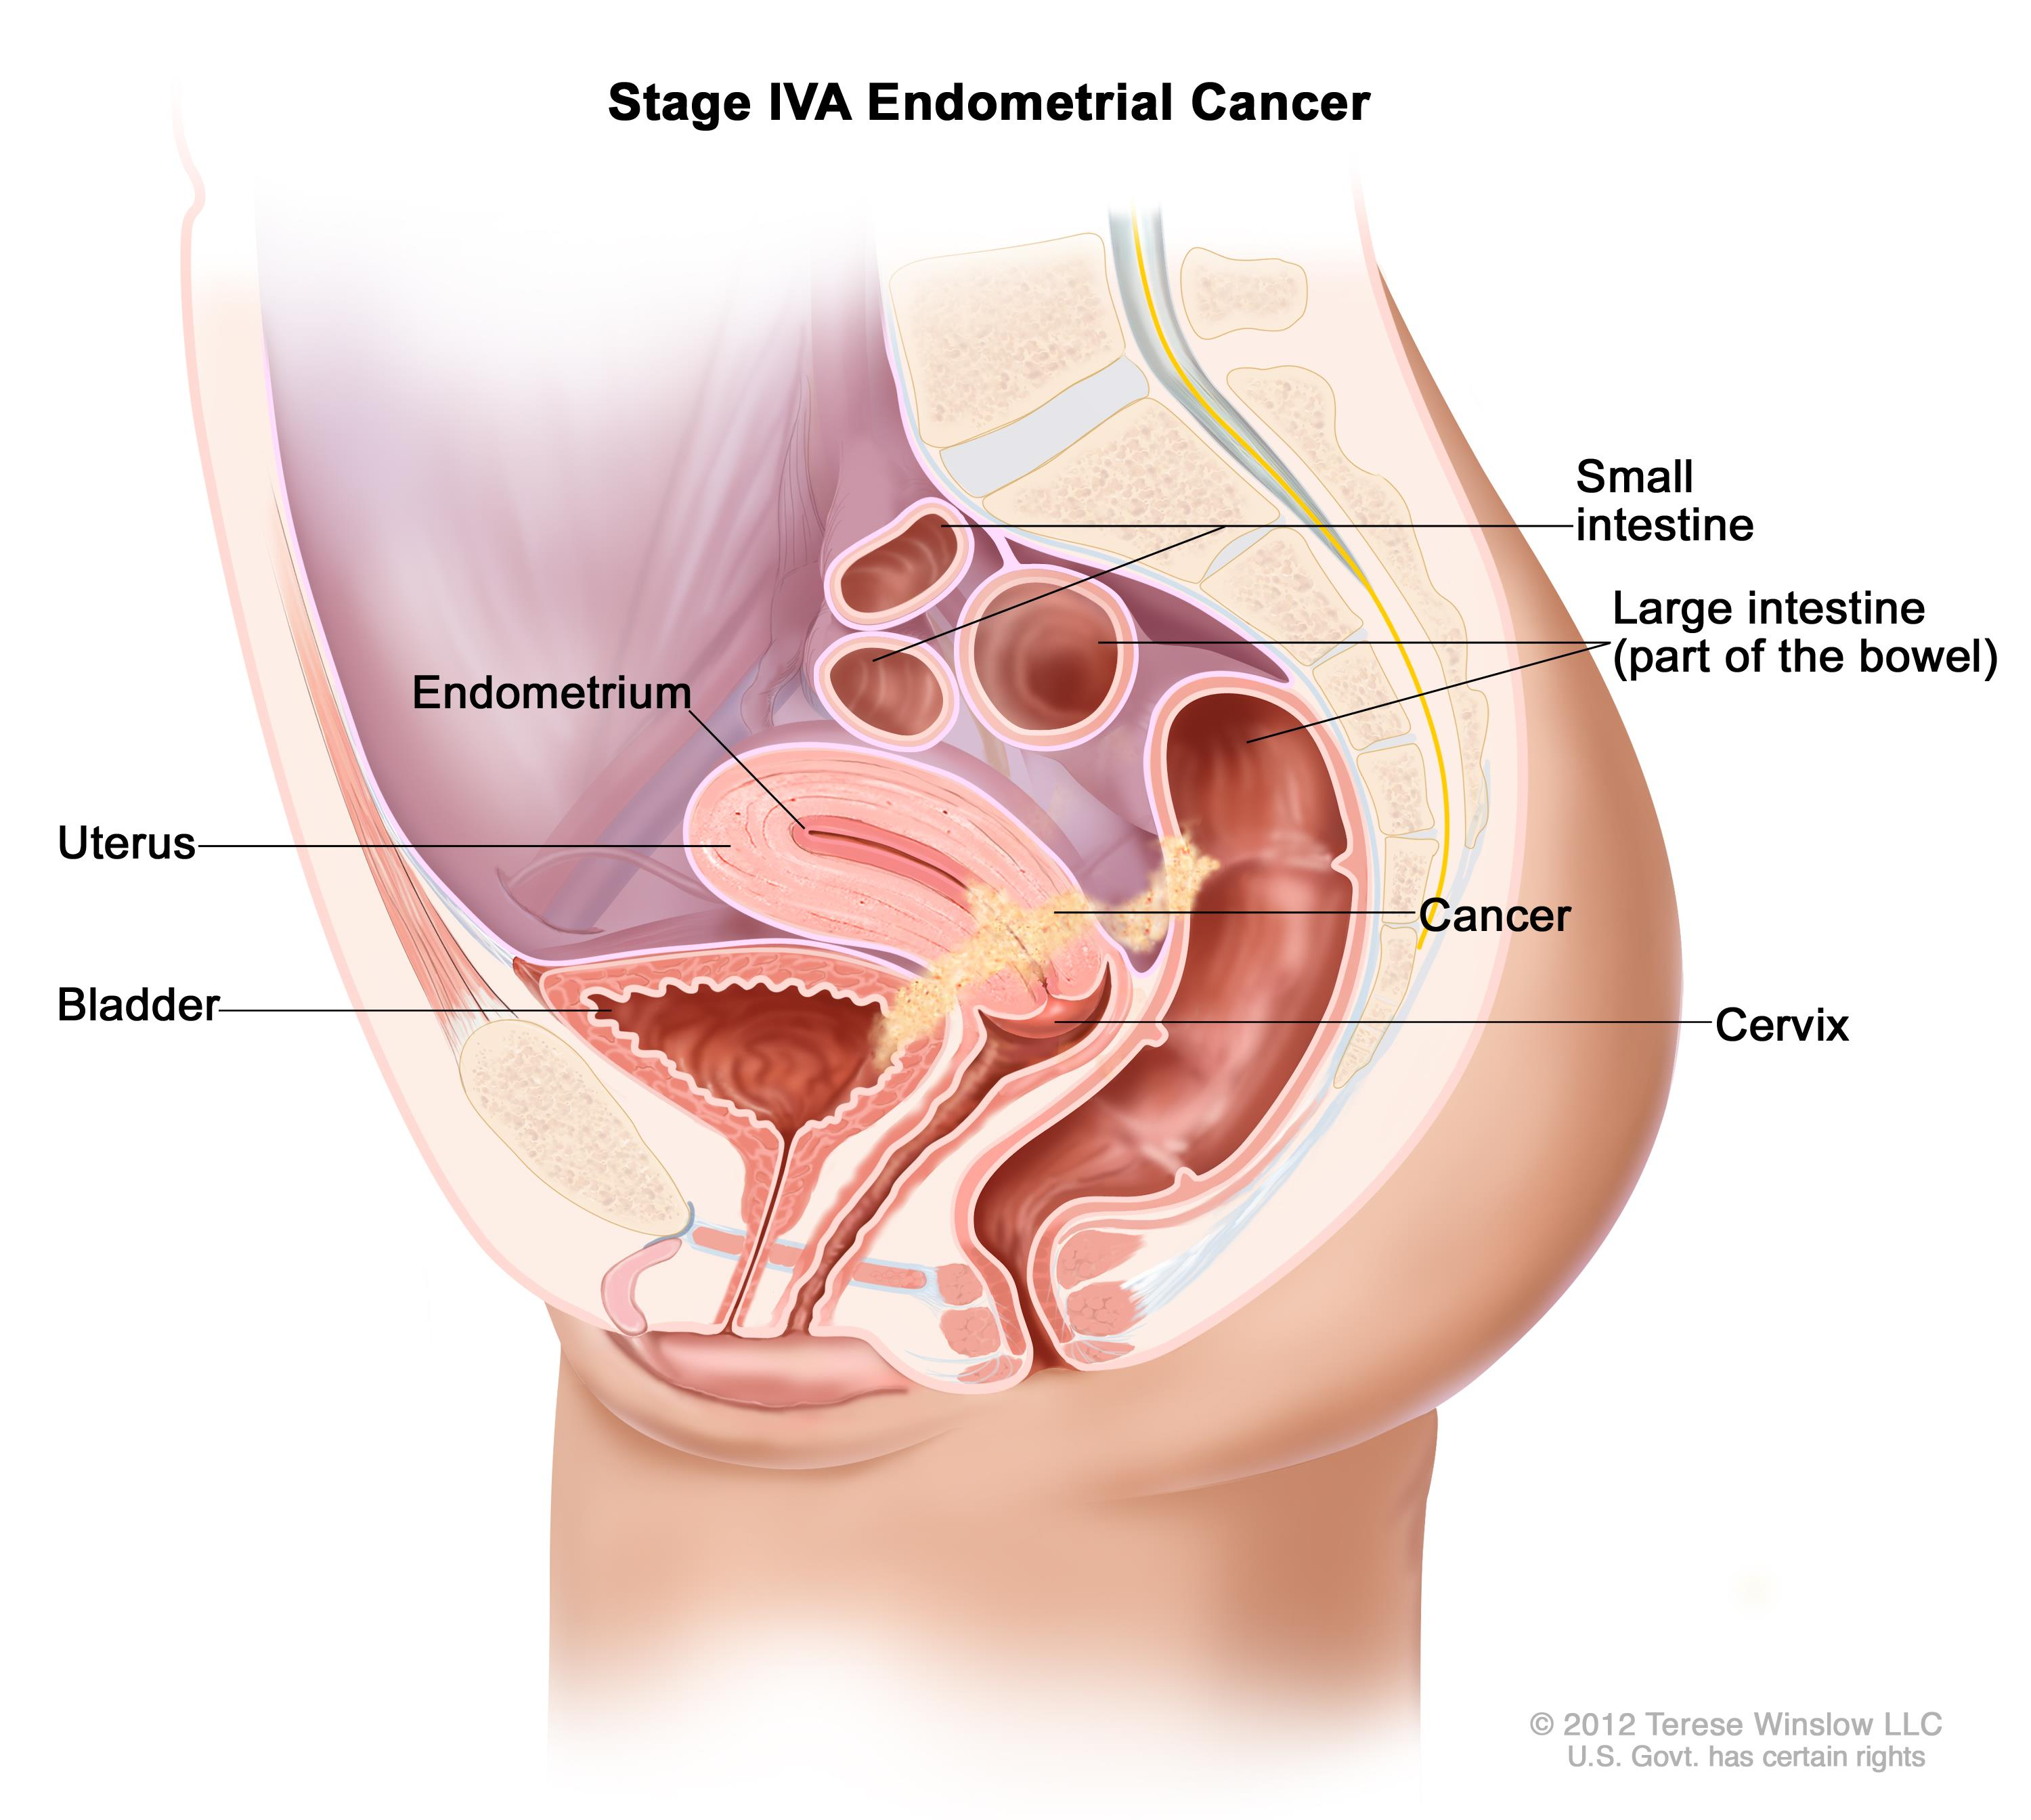 Stage IVA endometrial cancer shown in a side-view cross-section drawing of the uterus, bladder, cervix, vagina, small intestine, and large intestine. Cancer is shown in the bladder, uterus, and bowel.